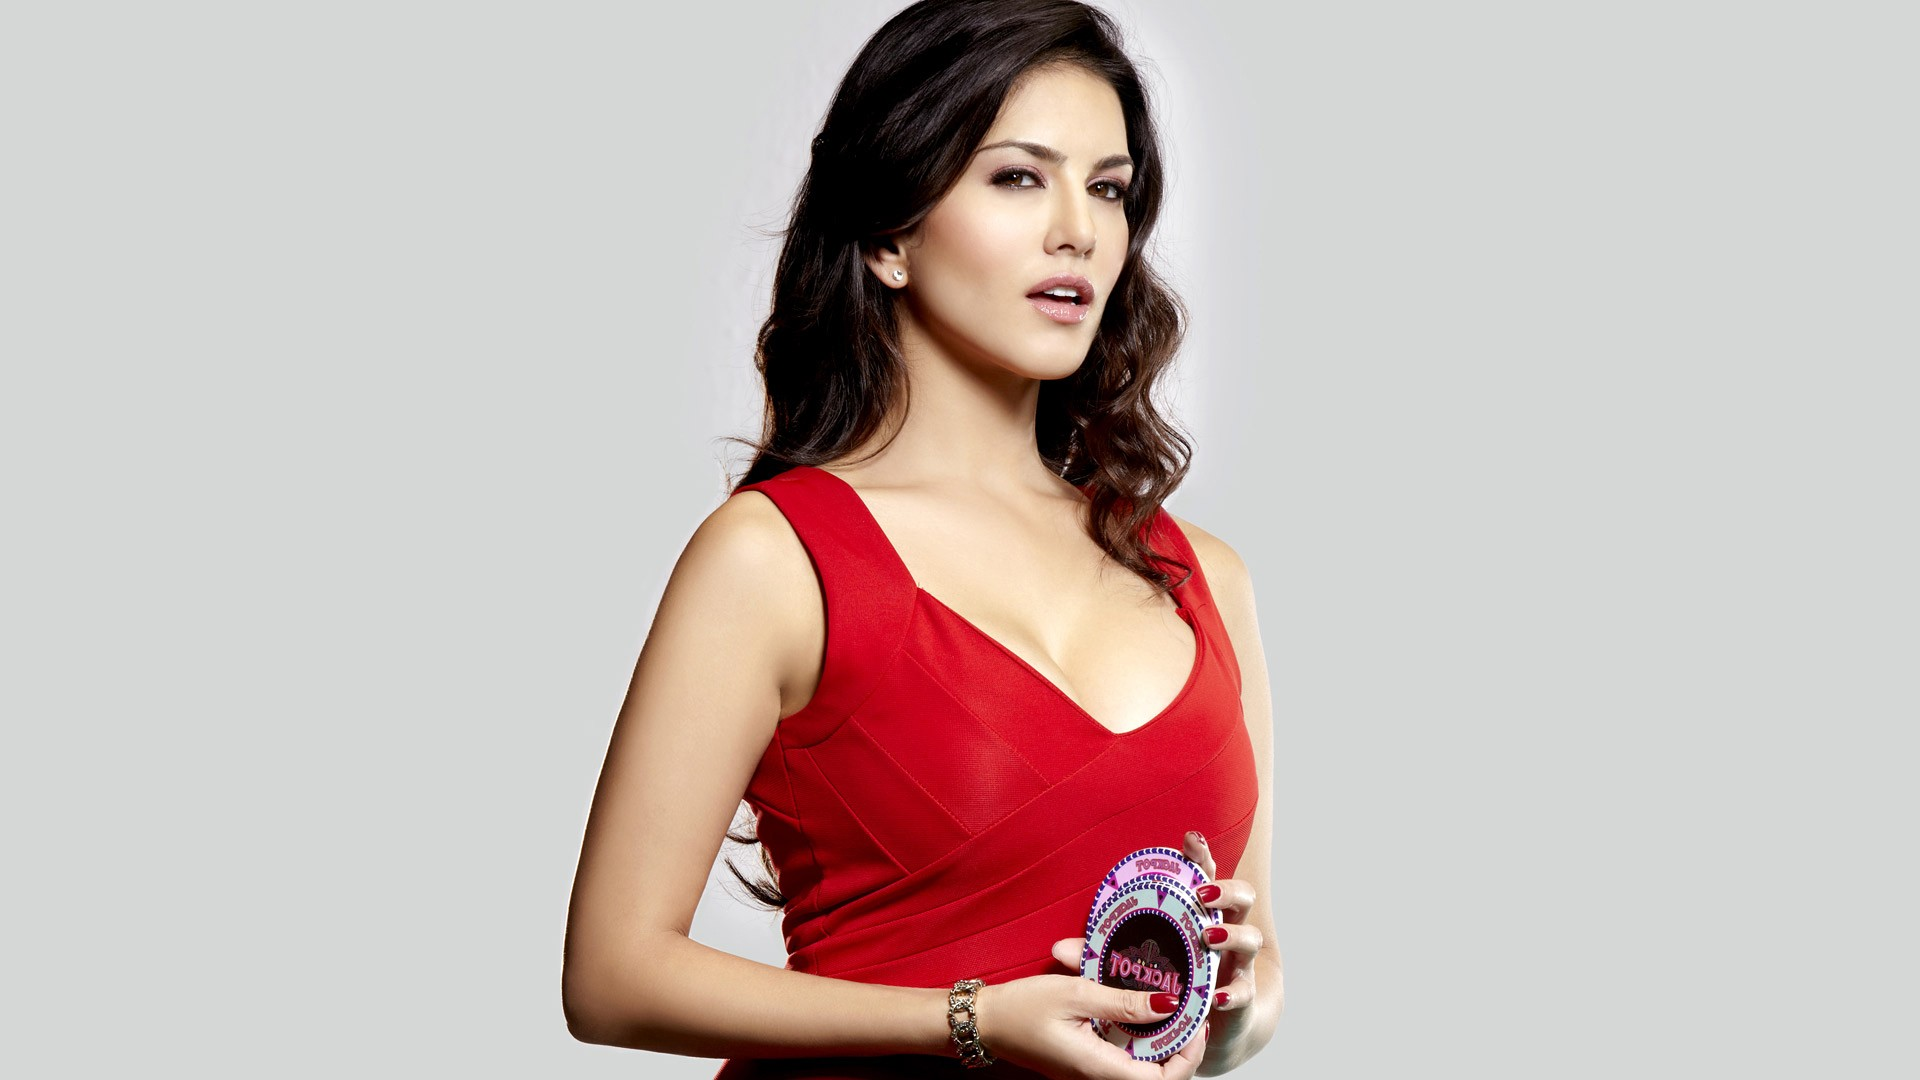 sunny leone old photo, hd indian celebrities, 4k wallpapers, images